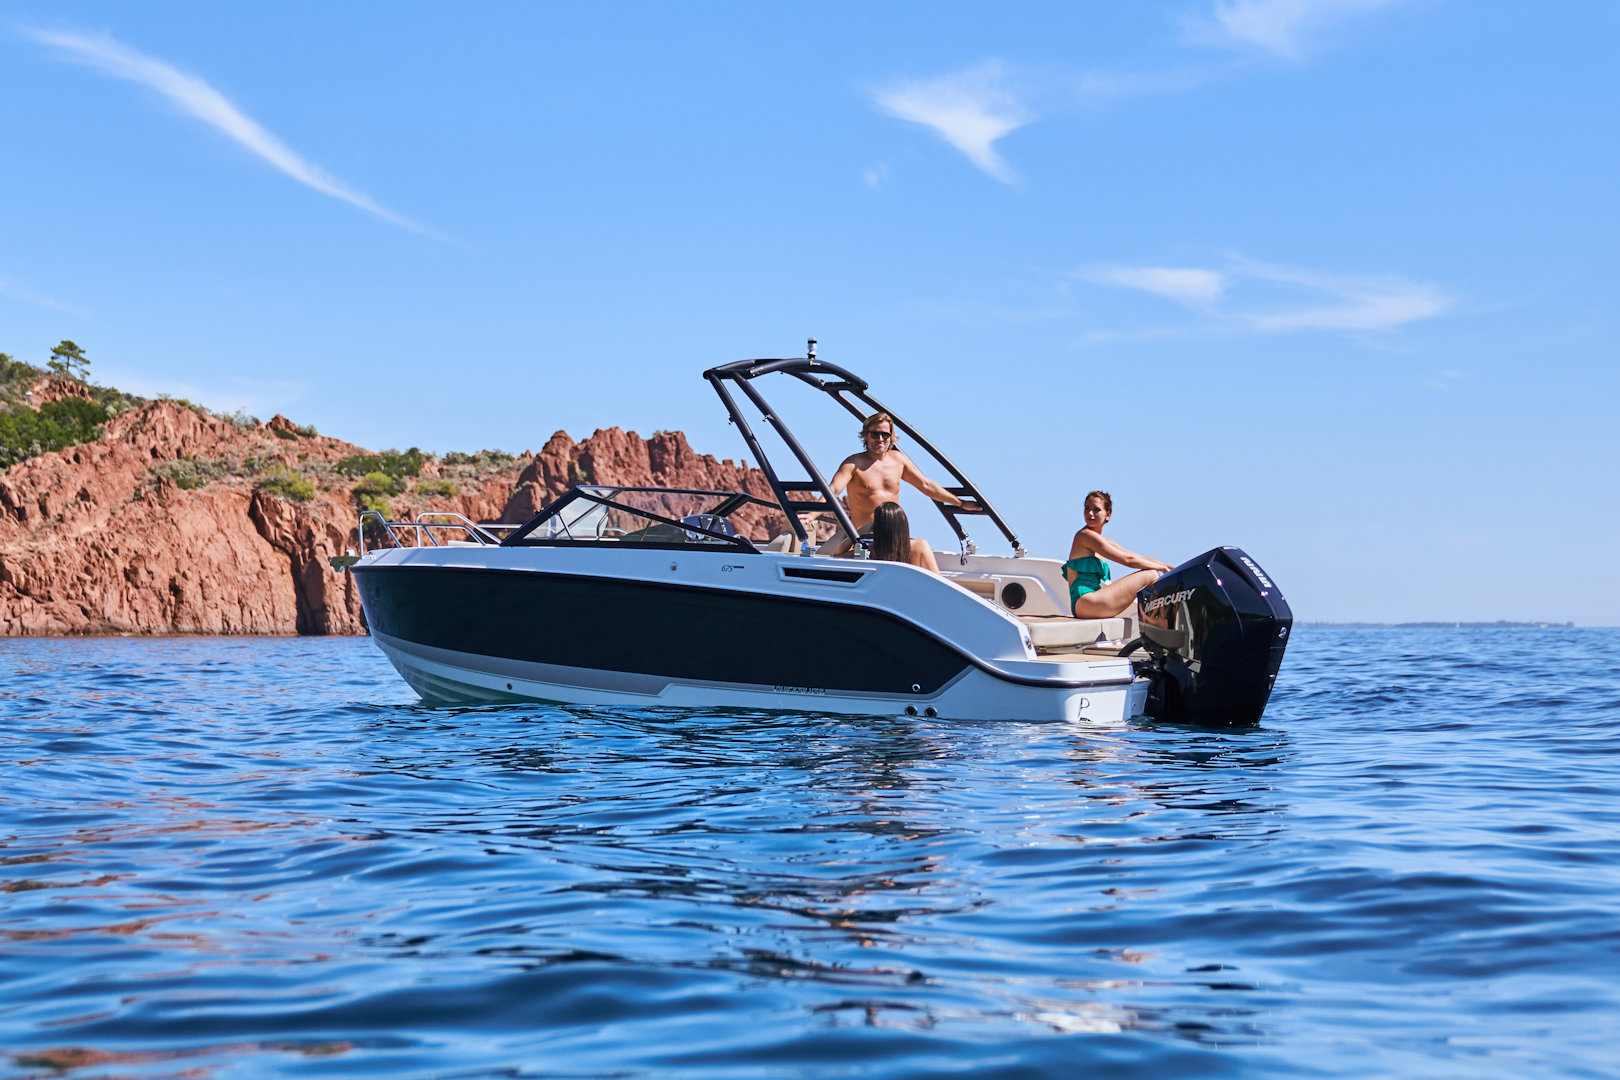 360 VR Virtual Tours of the Quicksilver Activ 675 Bowrider – VRCLOUD